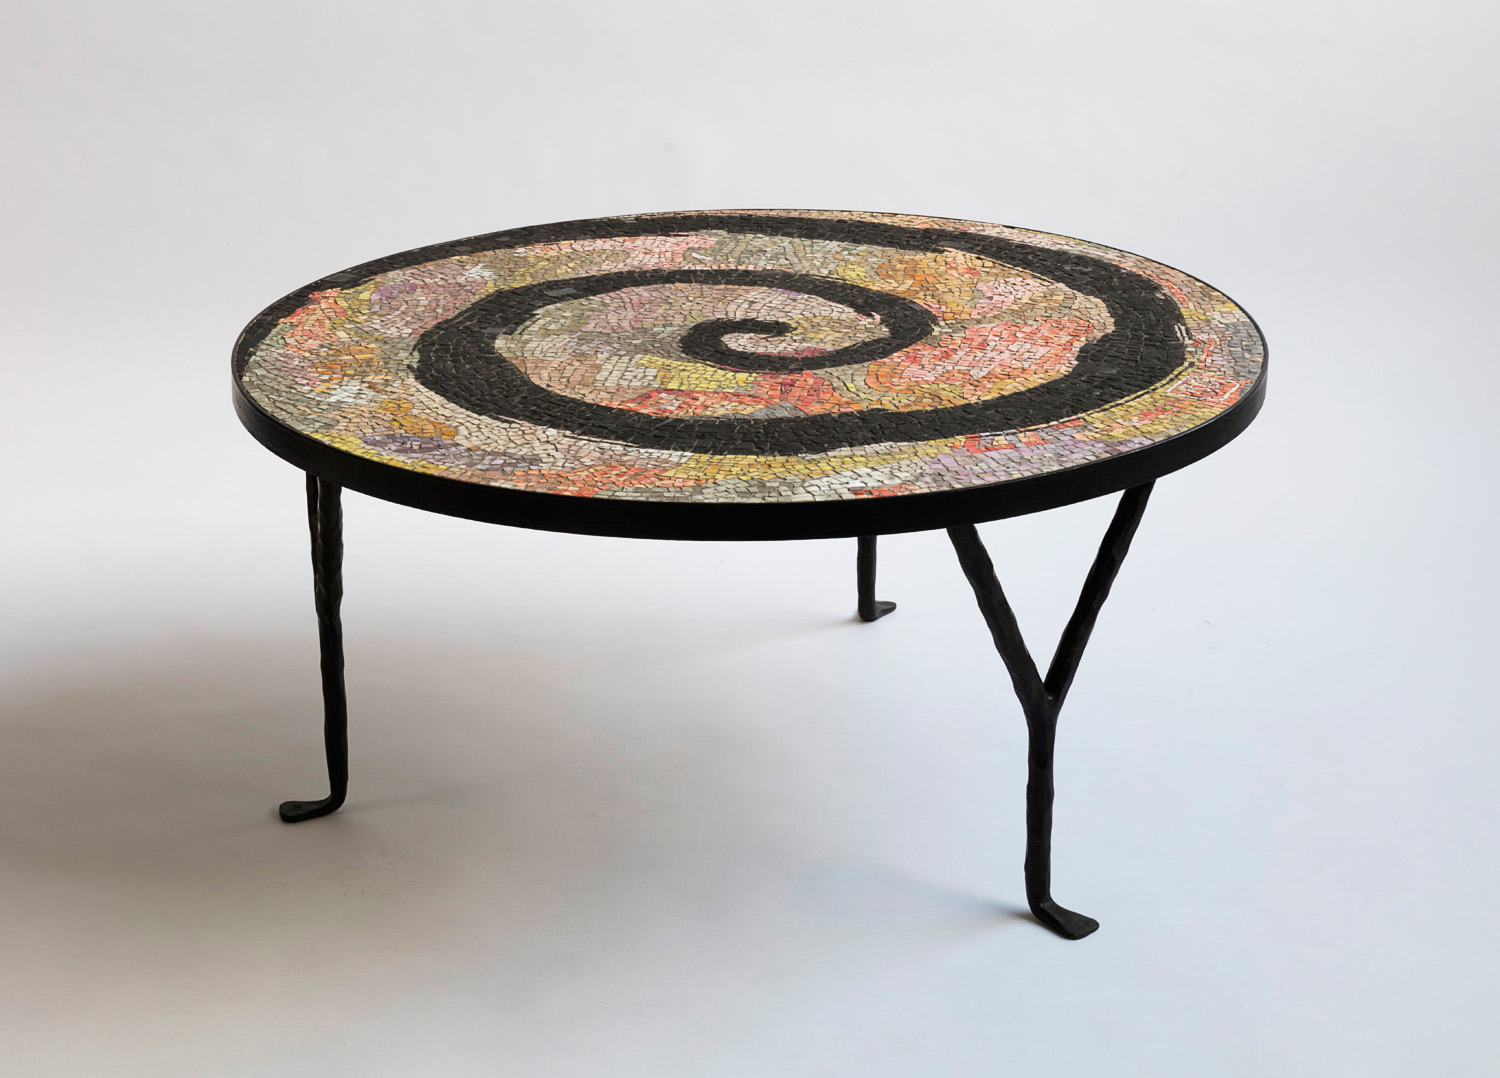 1. B&G Coffee Table 'Spirale'.jpg